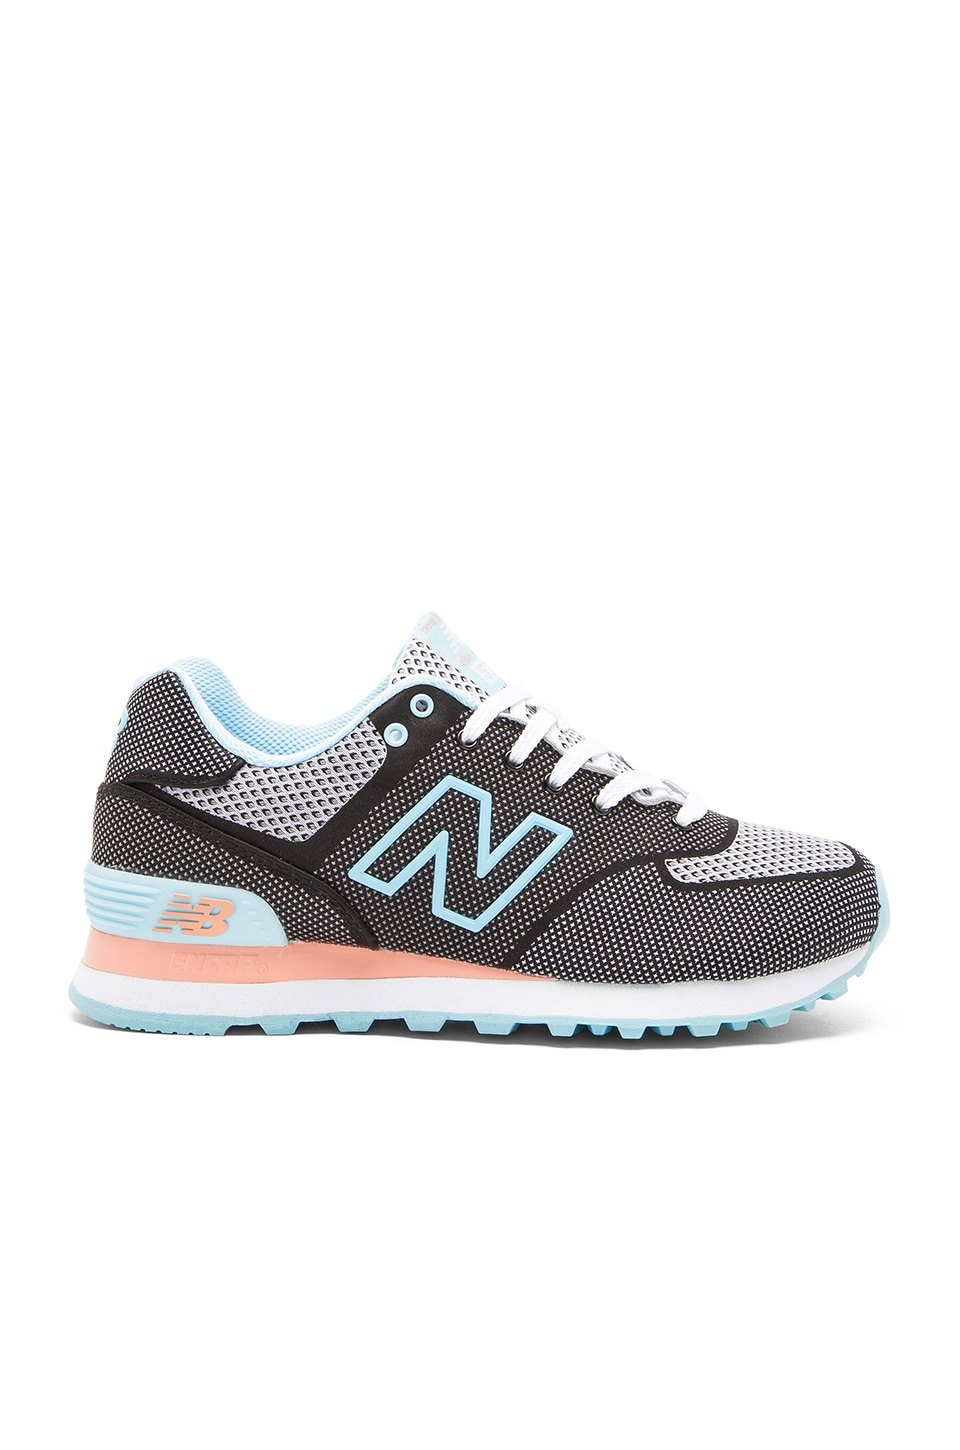 New Balance 574 Woven Collection Sneaker in Black & Blue